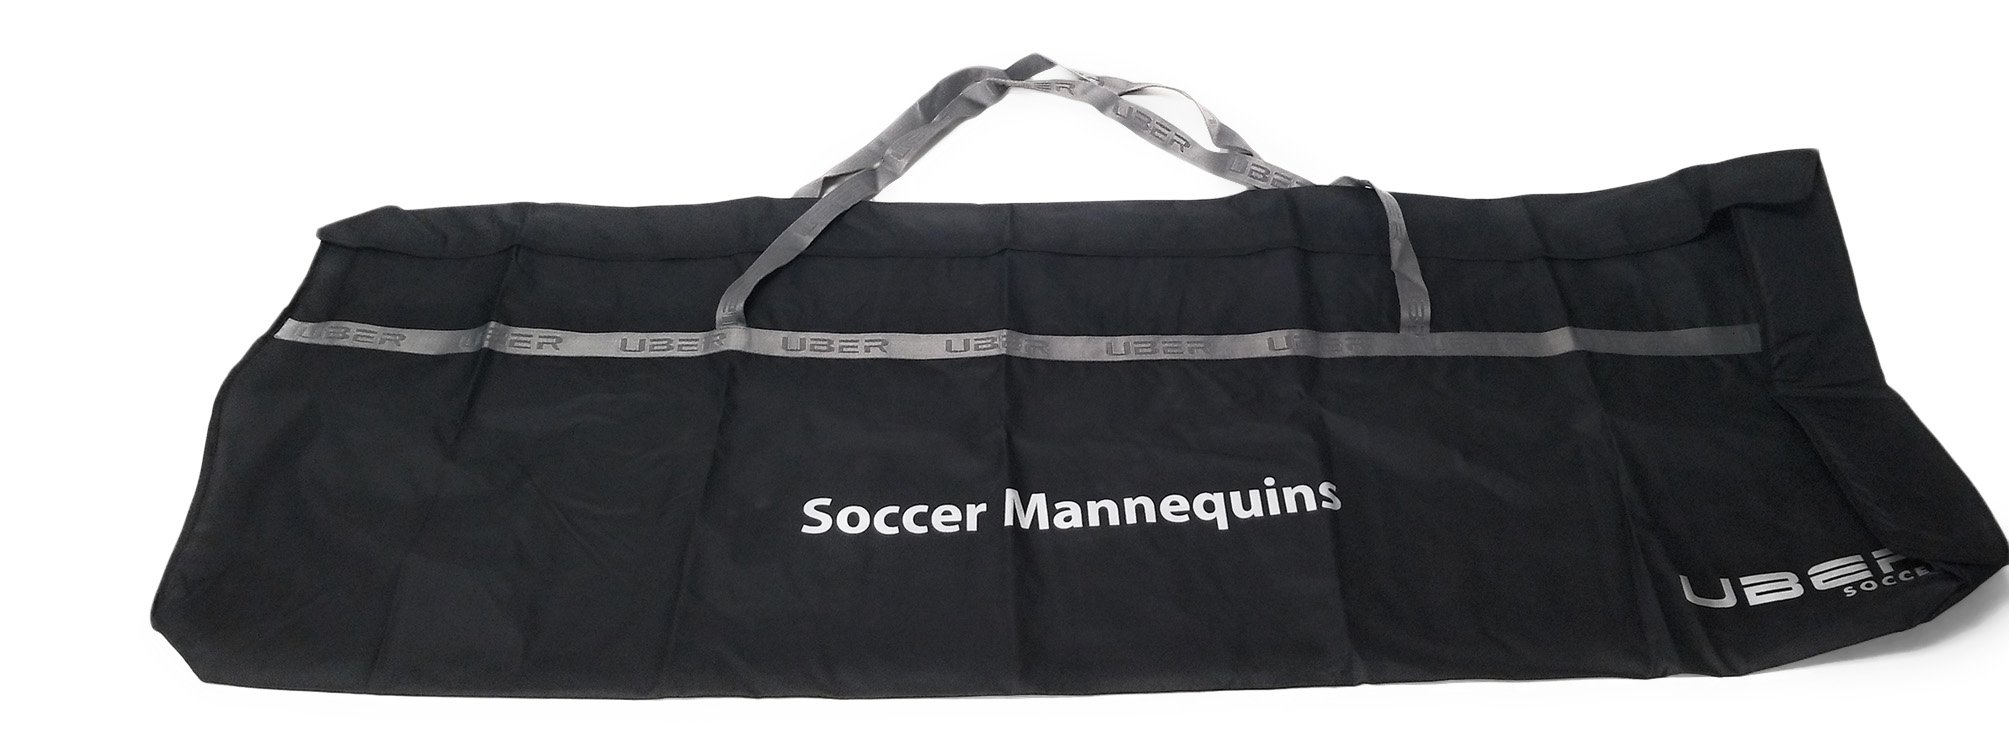 Uber Soccer Carrying Bag for Club Free Kick Training Mannequins